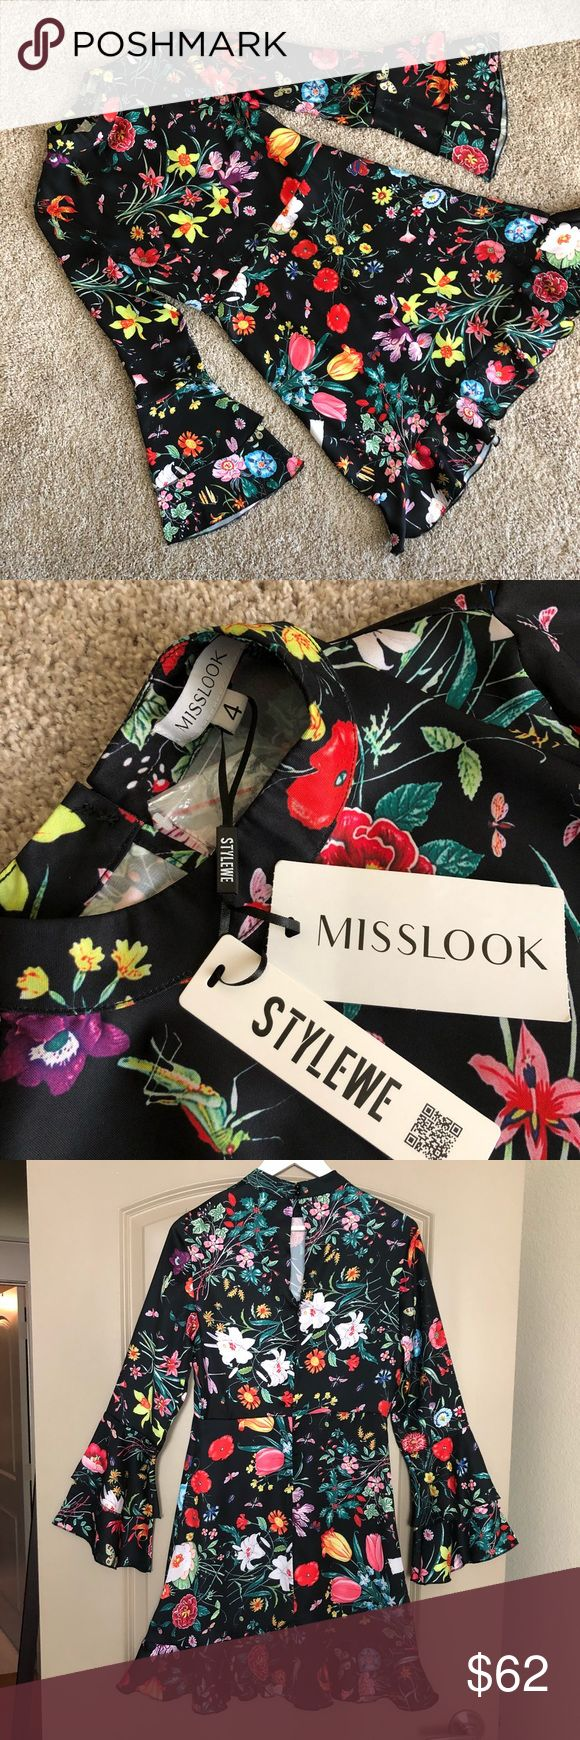 NWT Floral Dress NWT MissLook black floral dress with mock neck, bracelet length bell sleeves, A line skirt with ruffle trim, concealed back zipper, & keyhole. Super classy, retro yet current dress. Size 4. True to size.  100% Poly Wash cold. Dresses Midi